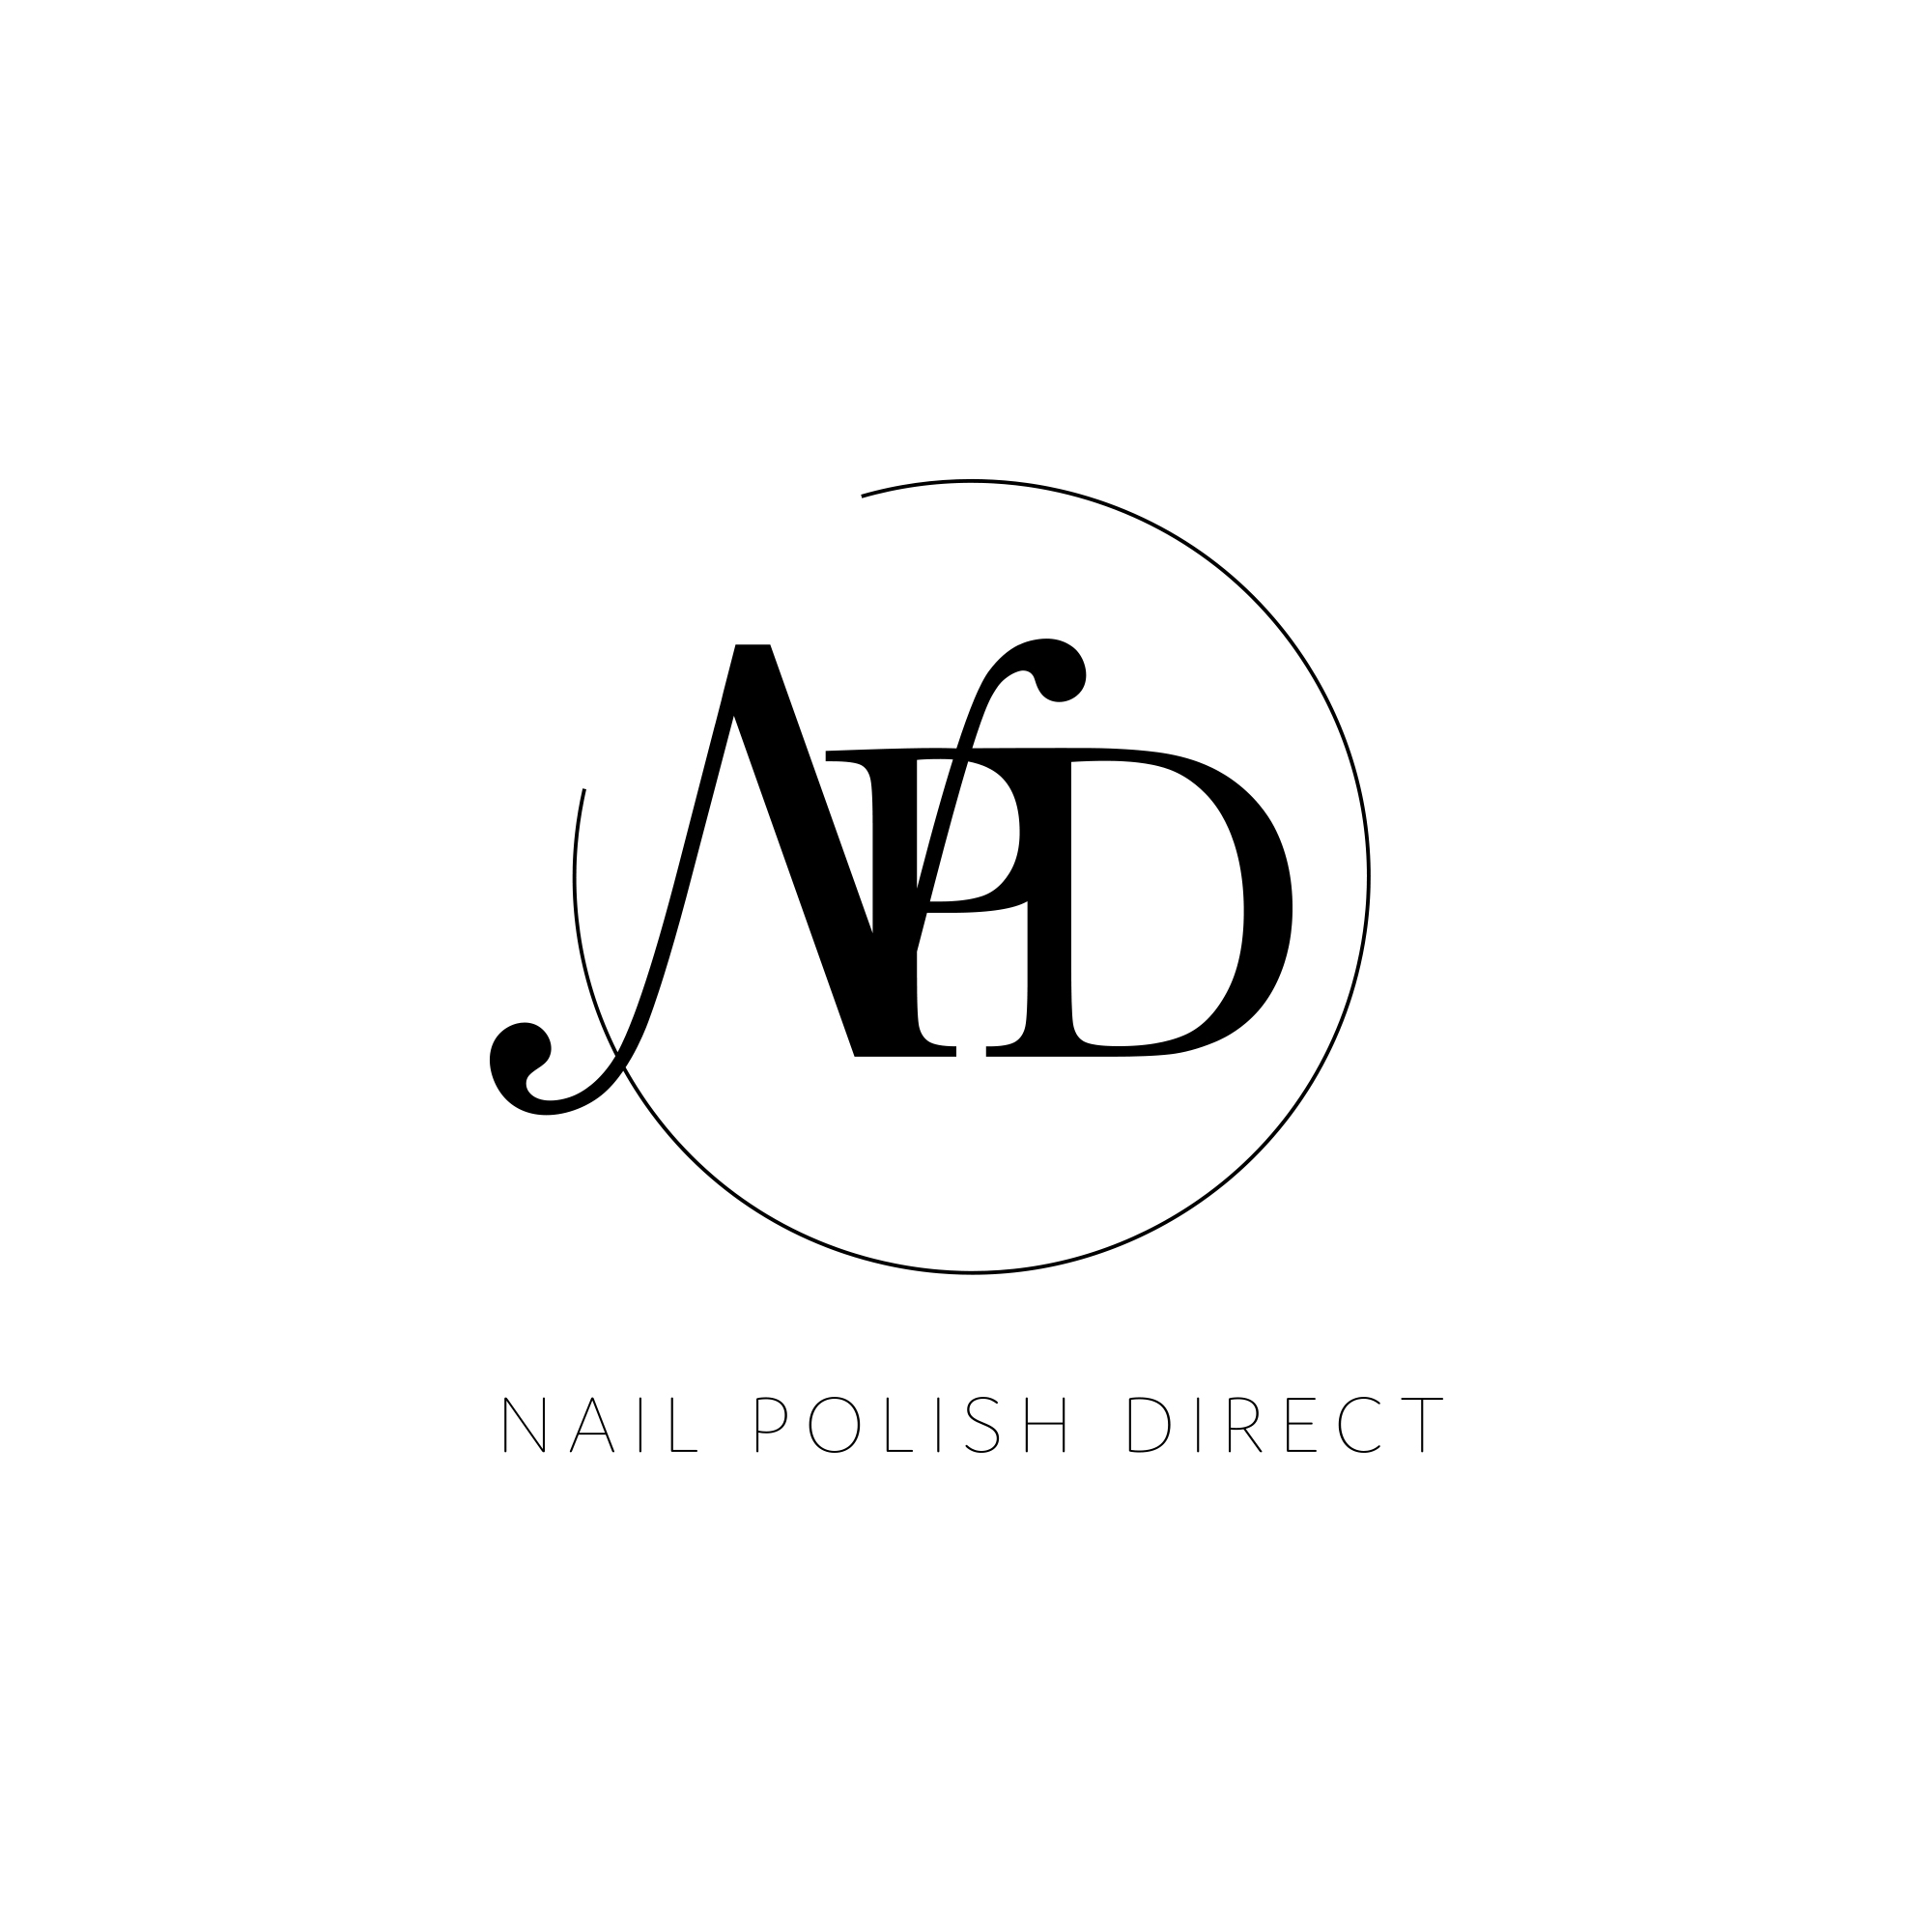 OPI Nail Polish Skyfall James Bond Nail Polish Collection - Die Another Day (HL D09) 15ml